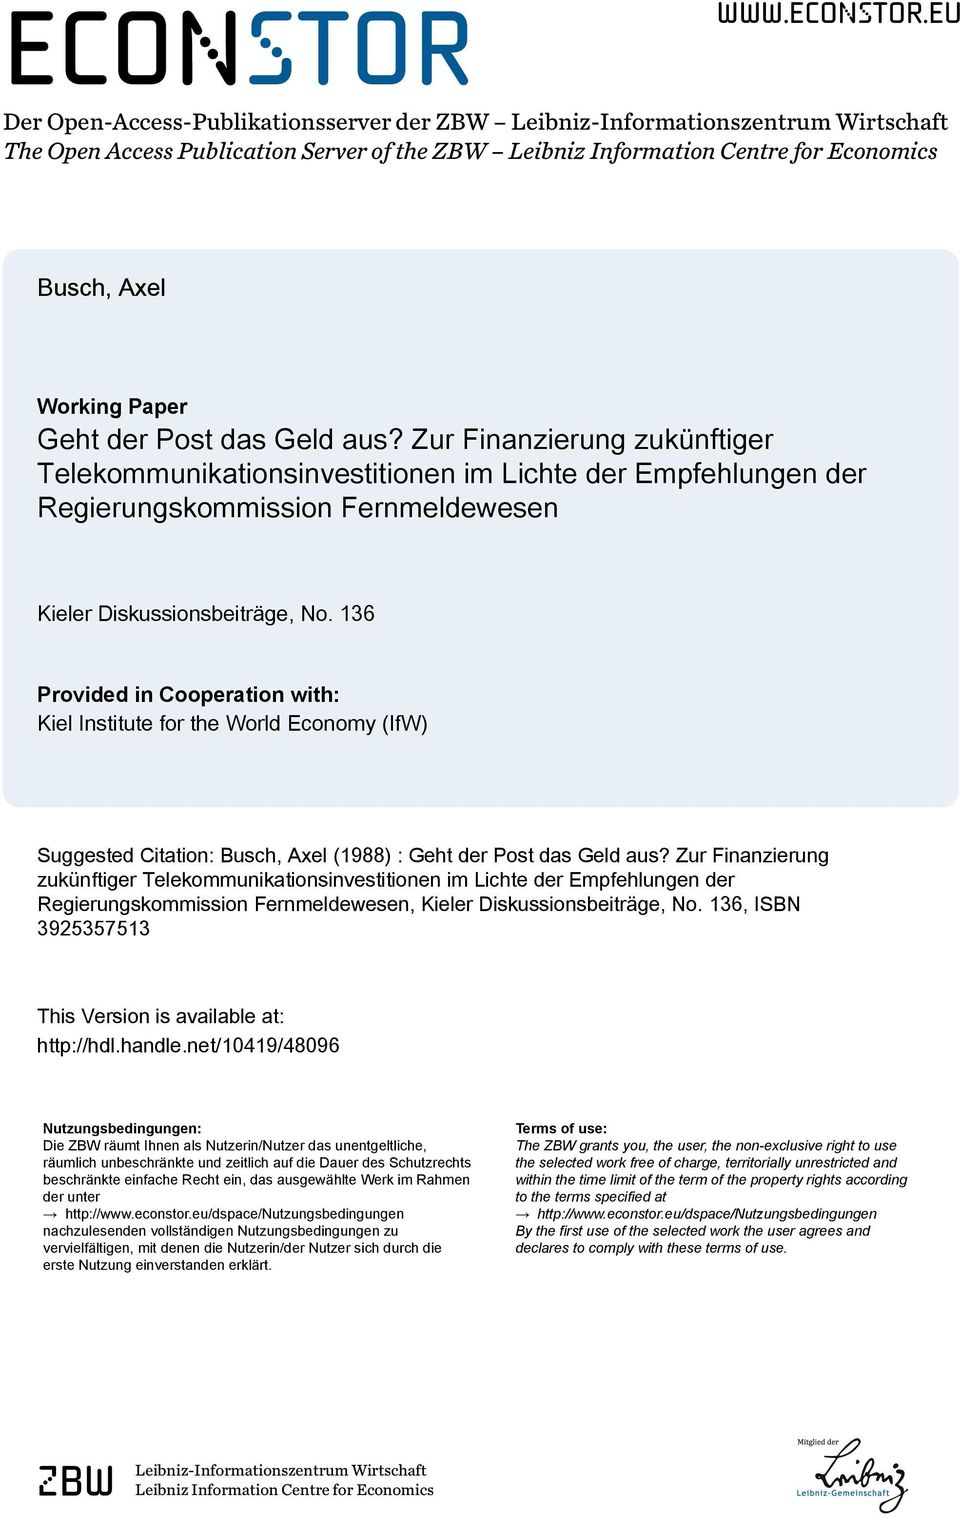 eu Der Open-Access-Publikationsserver der ZBW Leibniz-Informationszentrum Wirtschaft The Open Access Publication Server of the ZBW Leibniz Information Centre for Economics Busch, Axel Working Paper